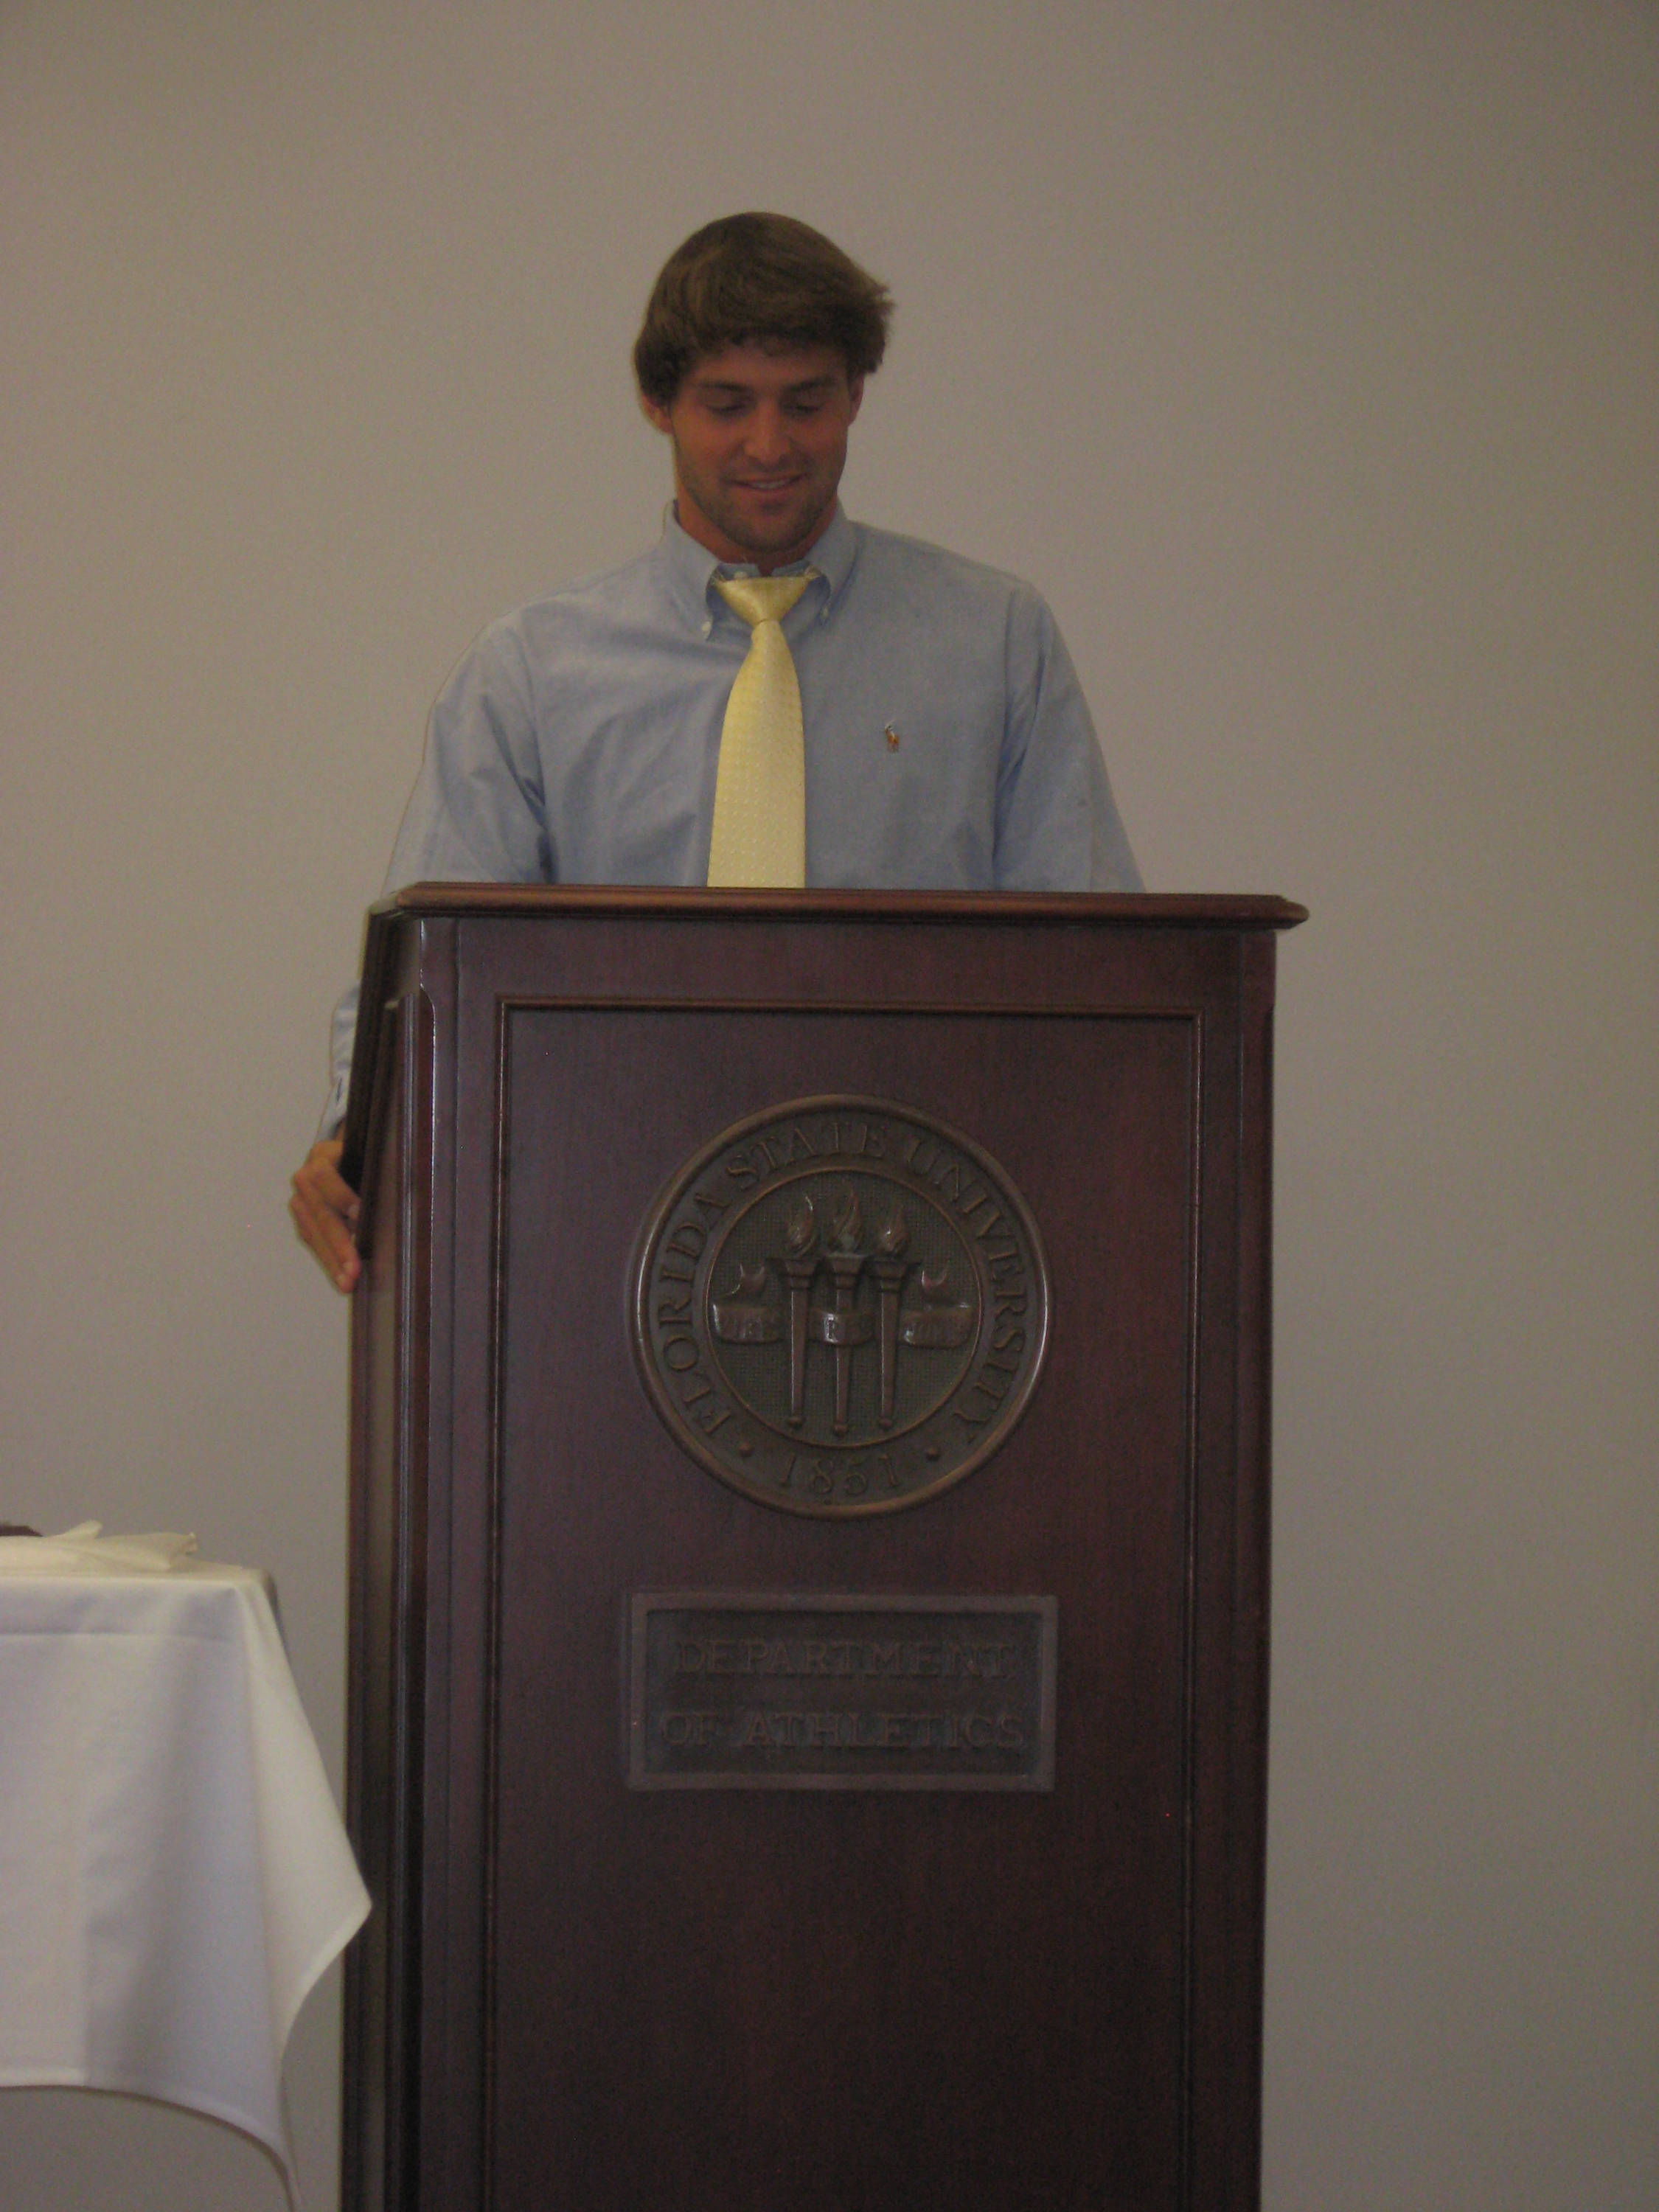 2011 Swimming and Diving Banquet: Robby Hayes